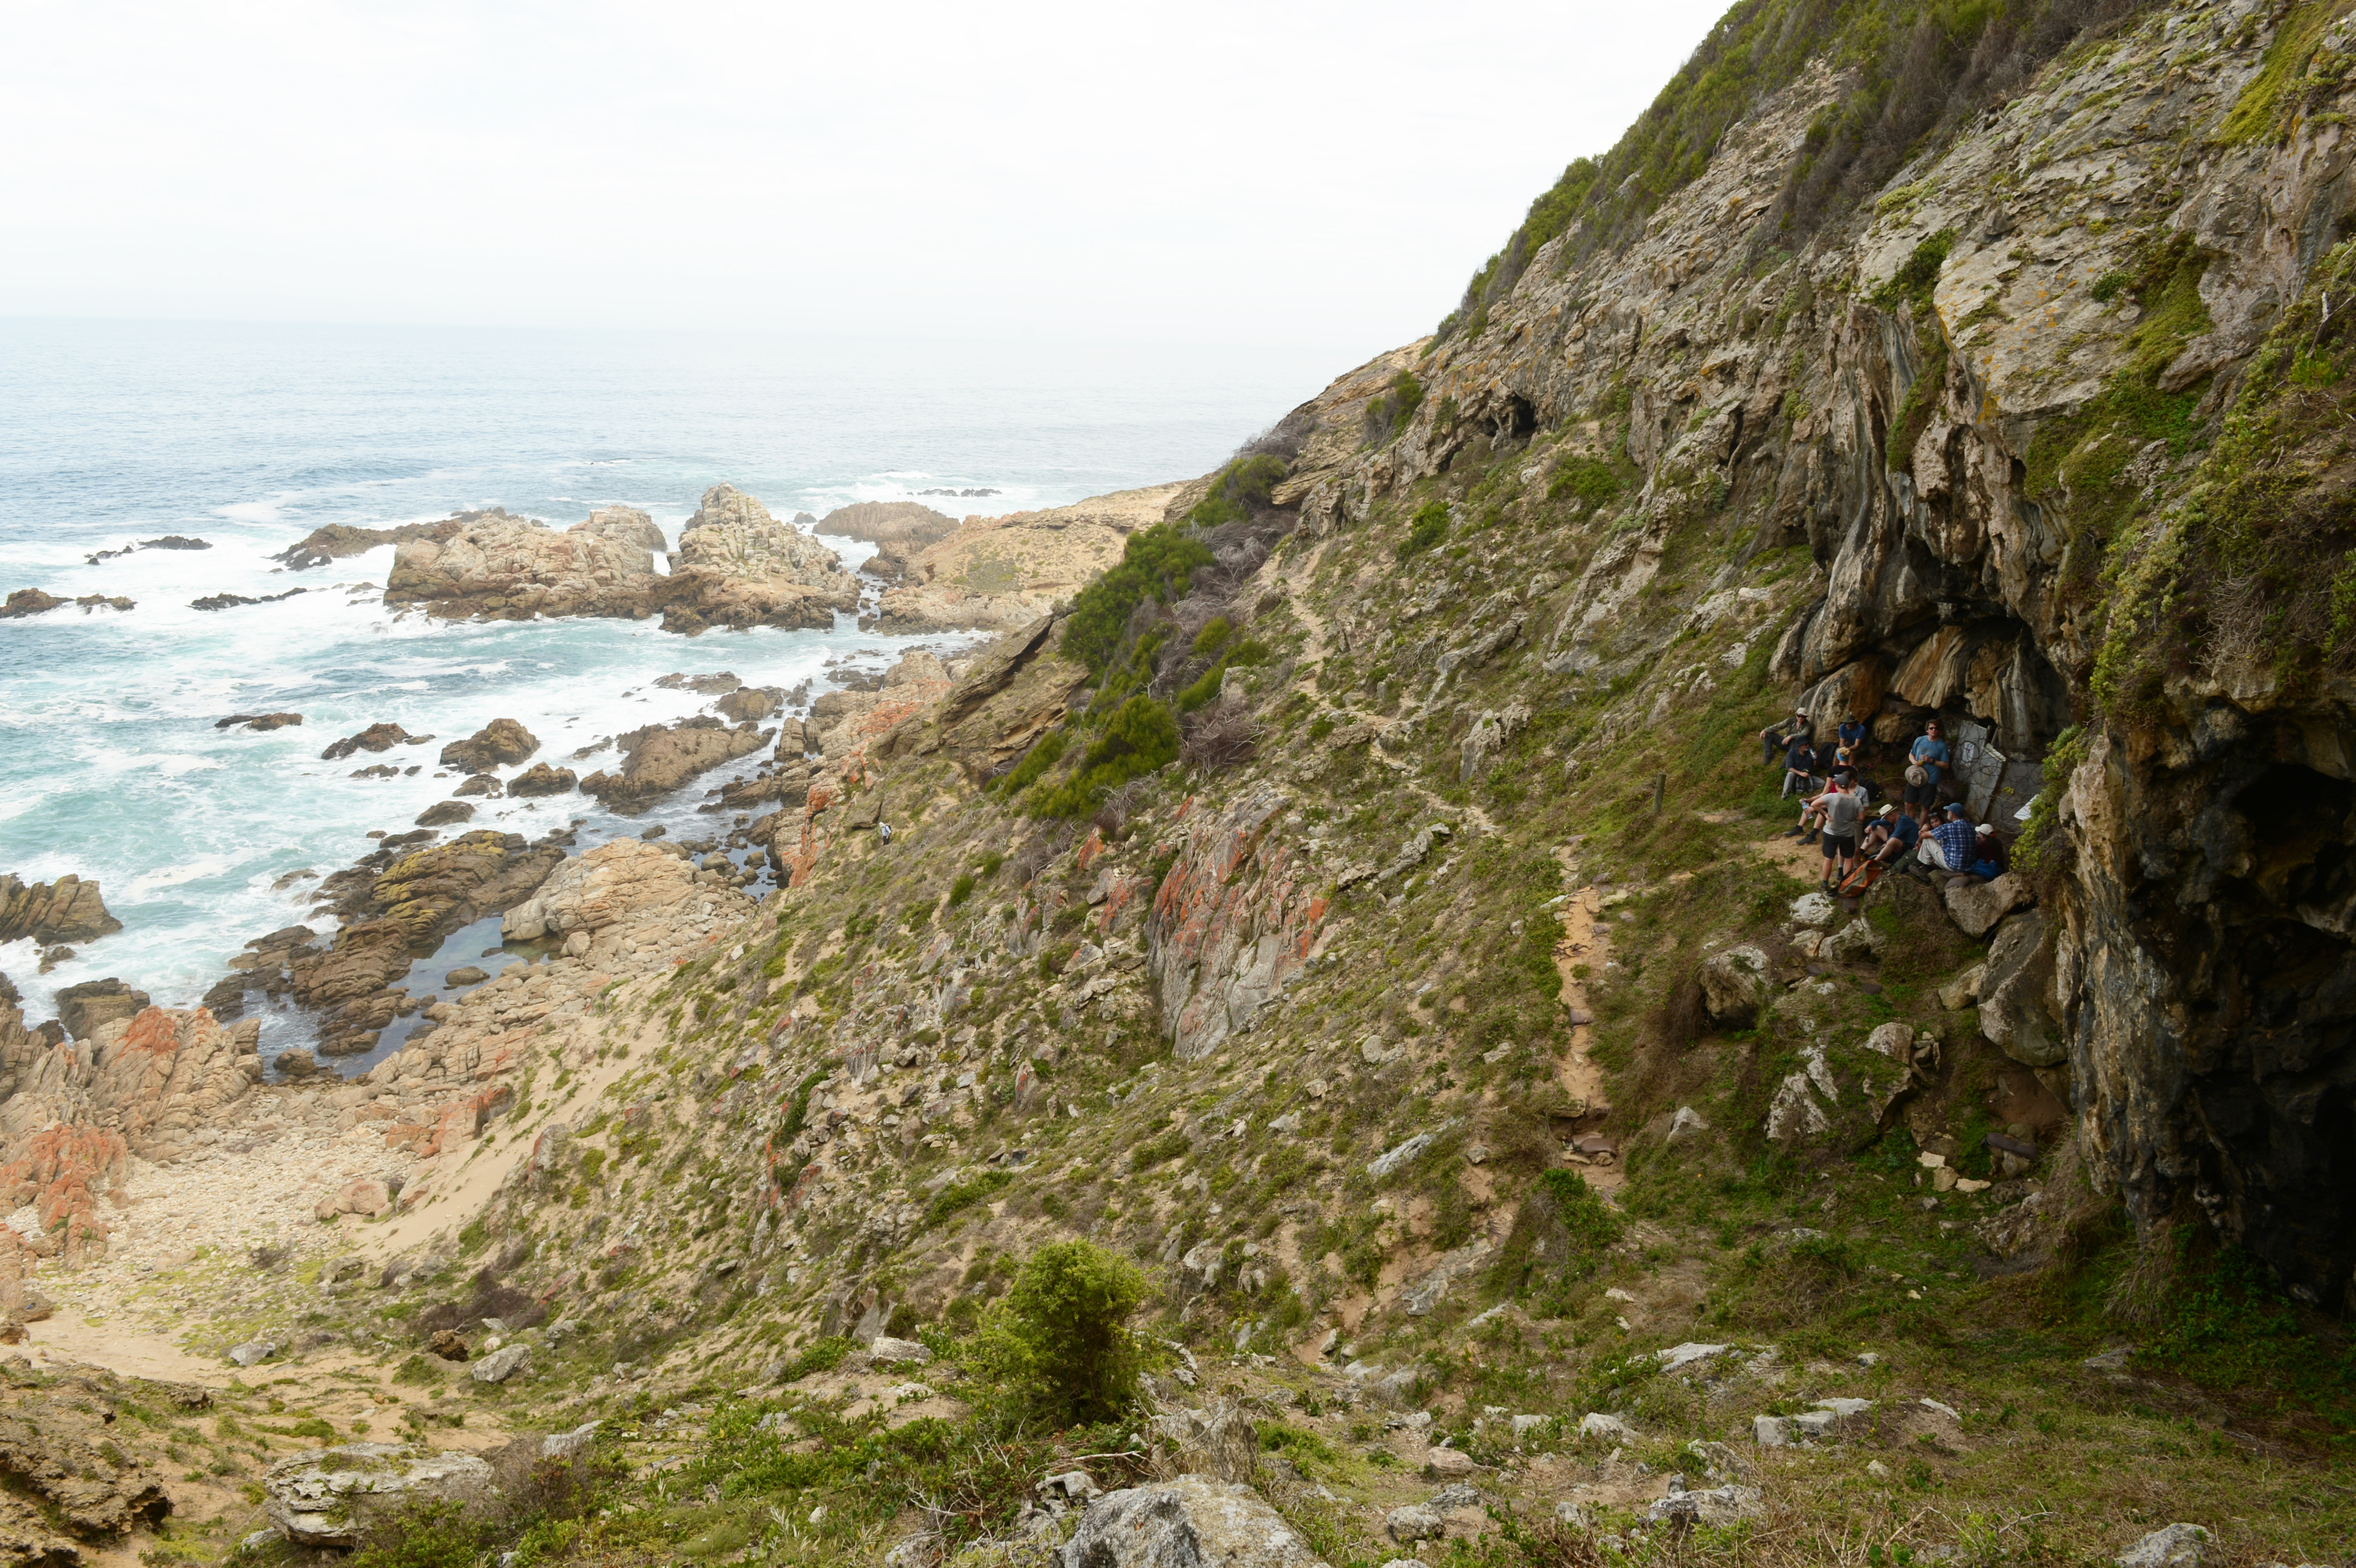 View of Blombos Cave during a visit by the SapienCE team in 2018 (Image courtesy of Ole Fredrik Unhammer)